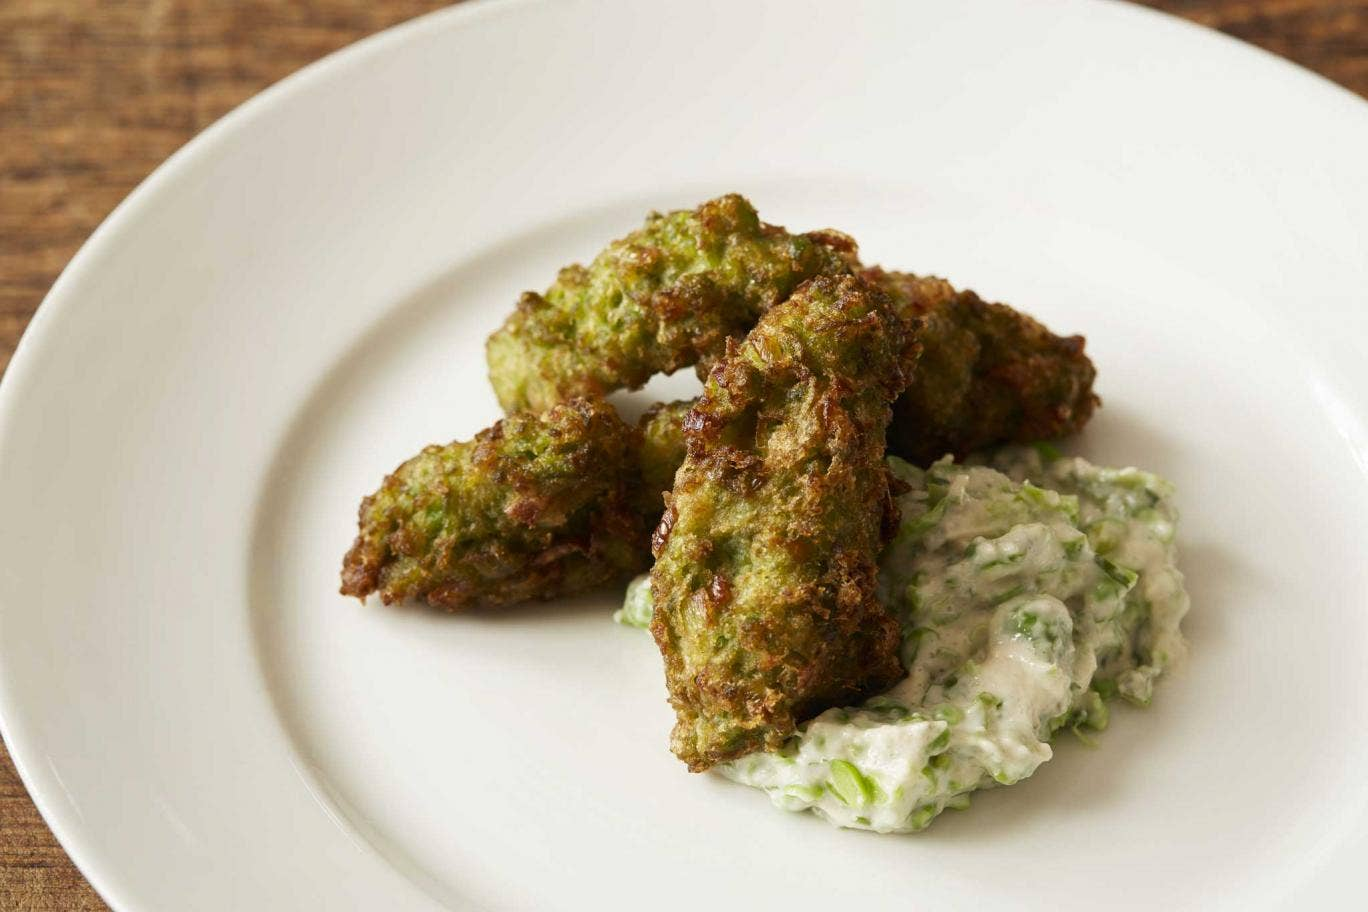 Serve pea and ham fritters as snacks with drinks, or as a starter